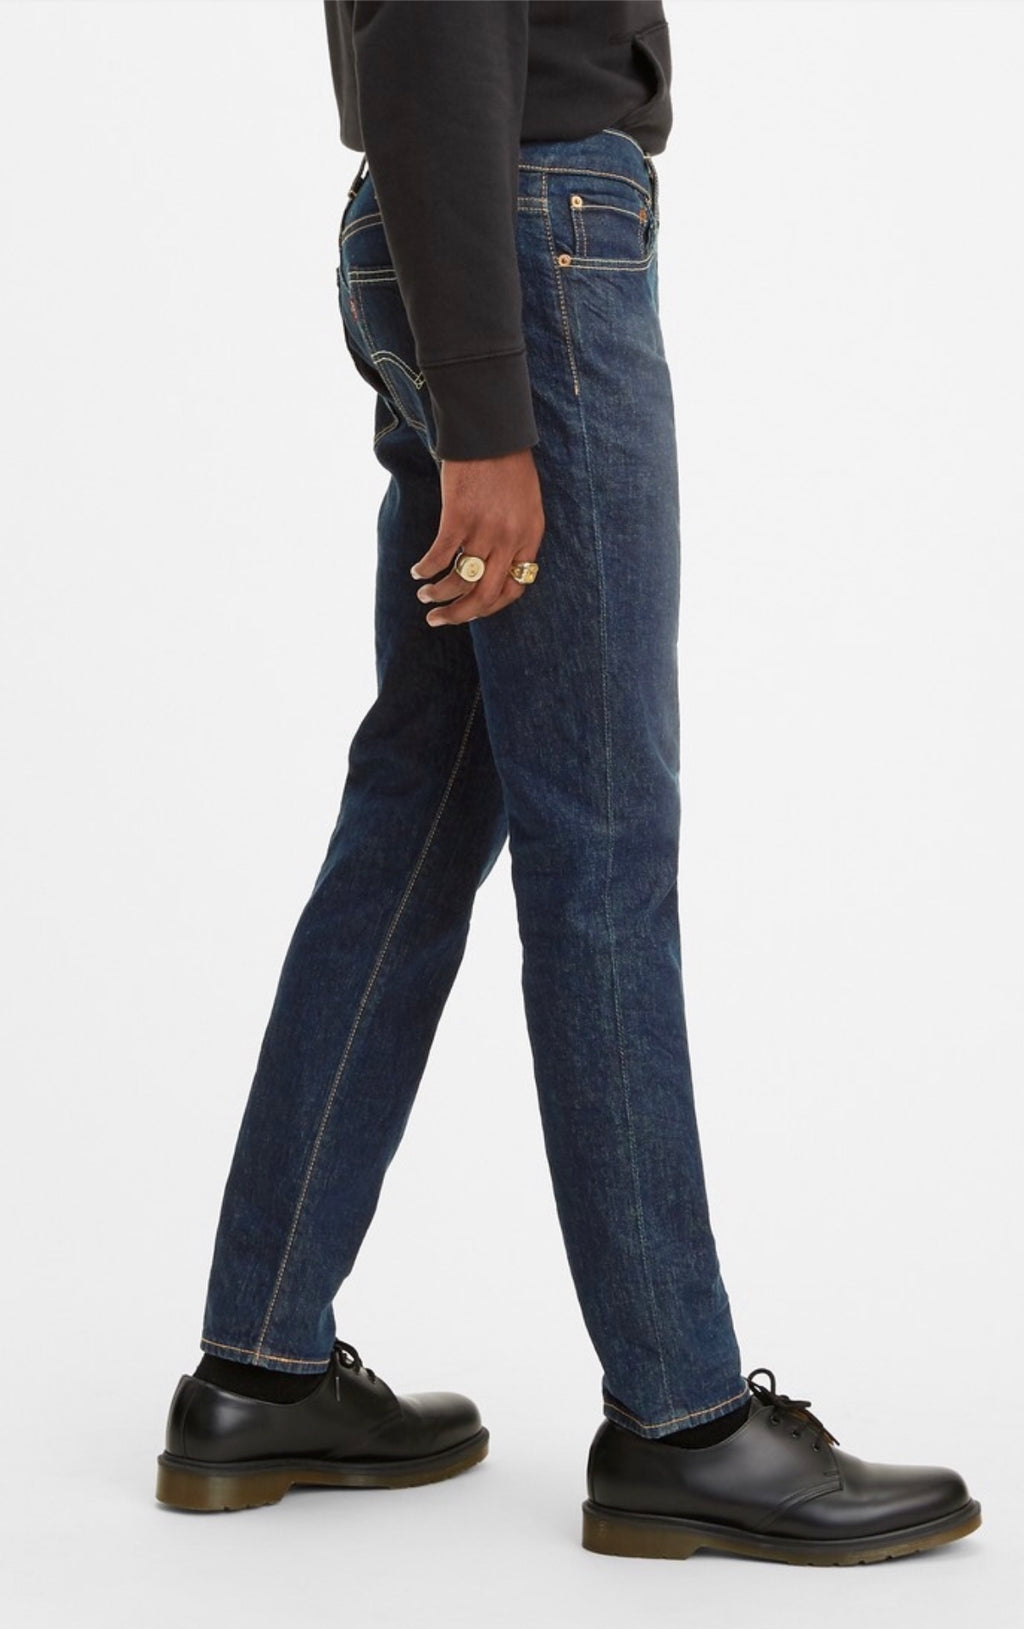 Men's 511 Slim Fit Jeans - Dark Wash